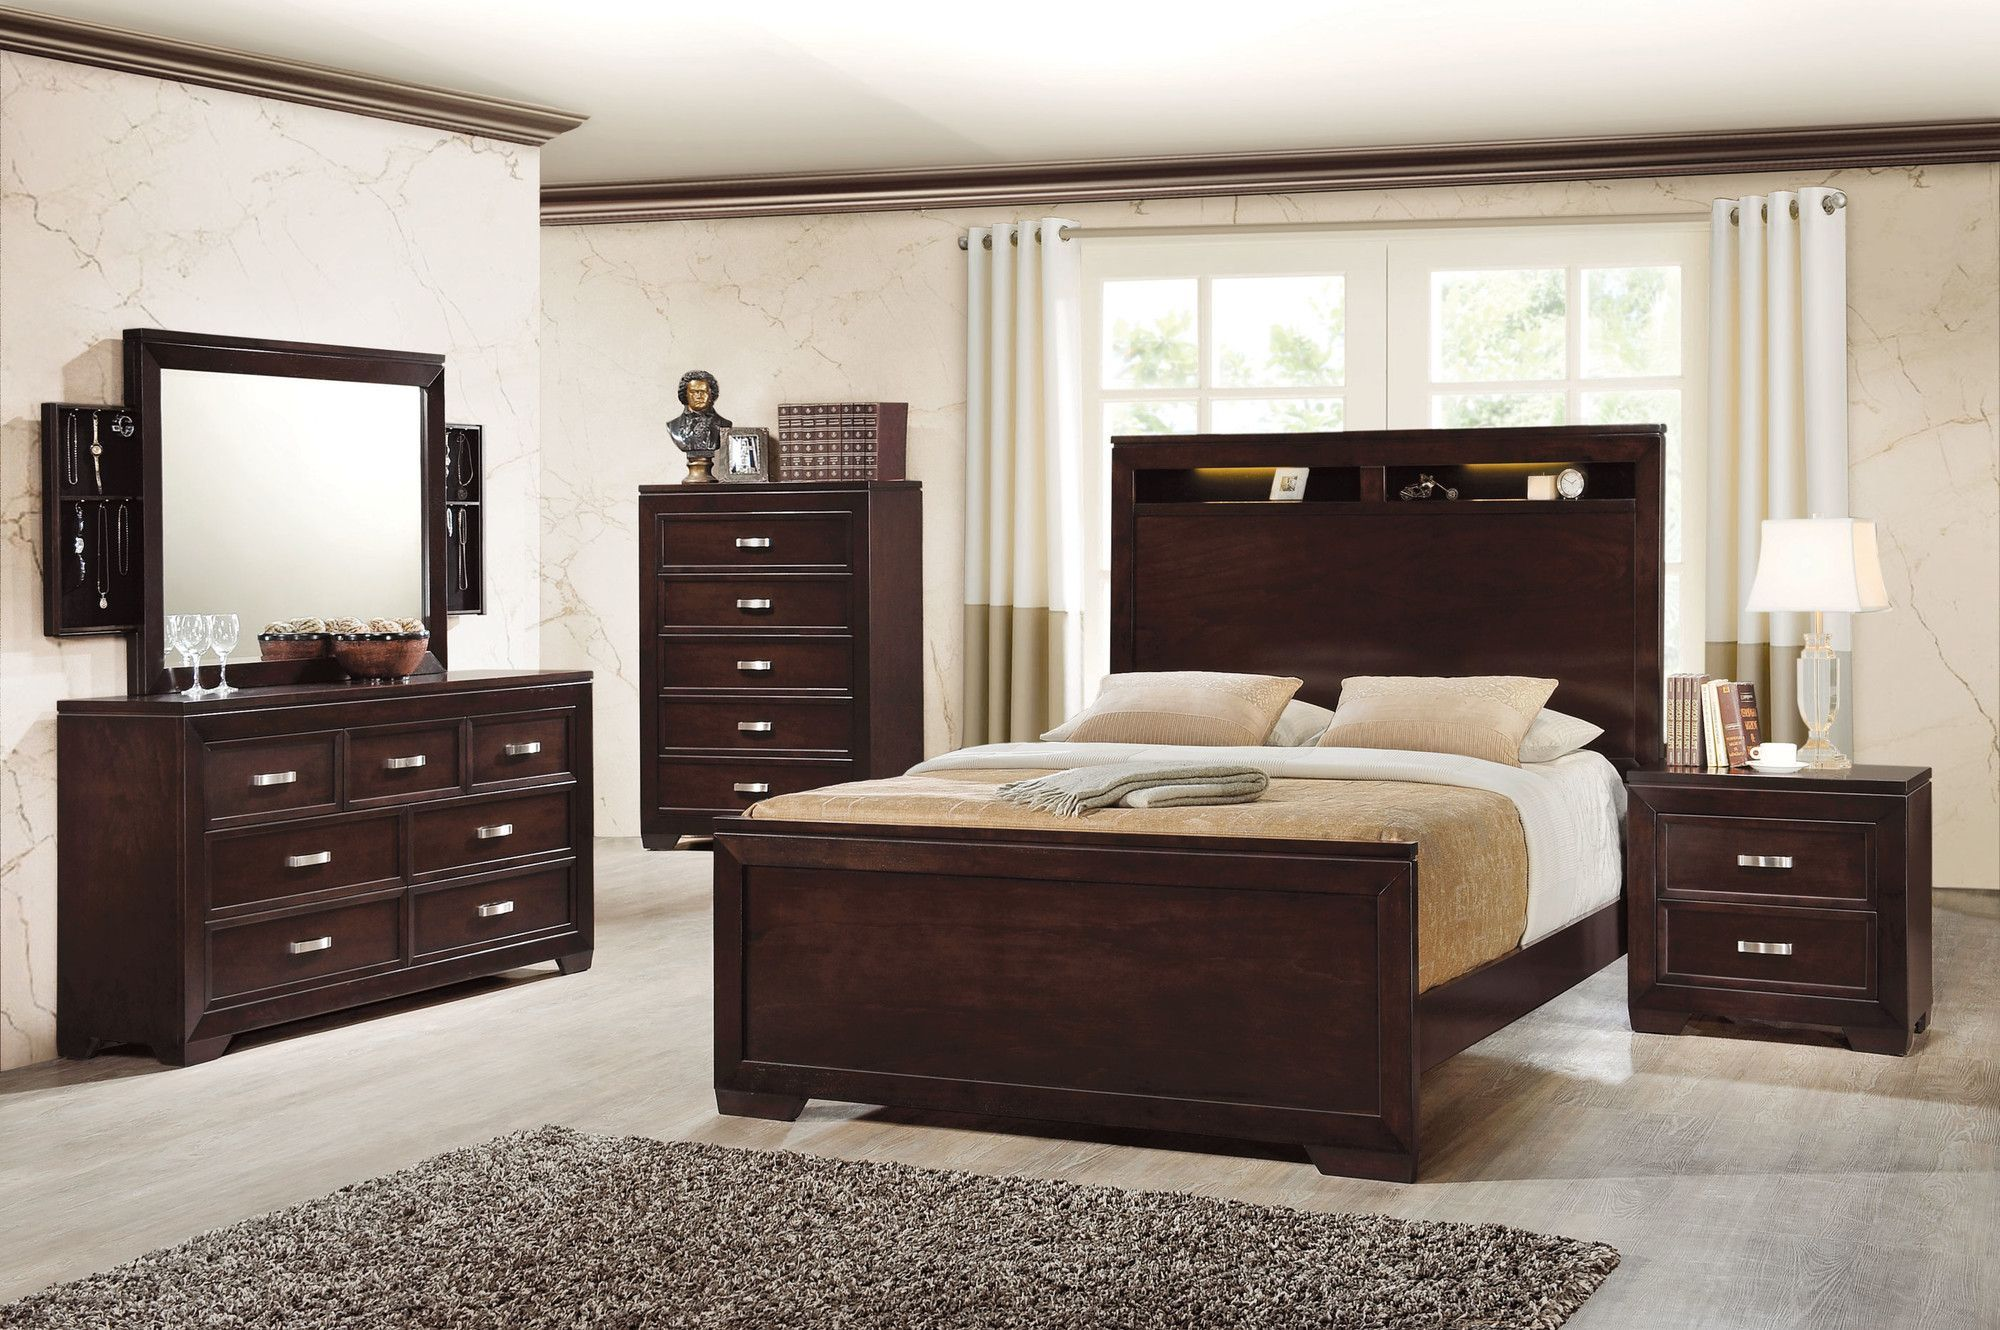 Solano 5 Drawer Lingerie Chest Products Pinterest